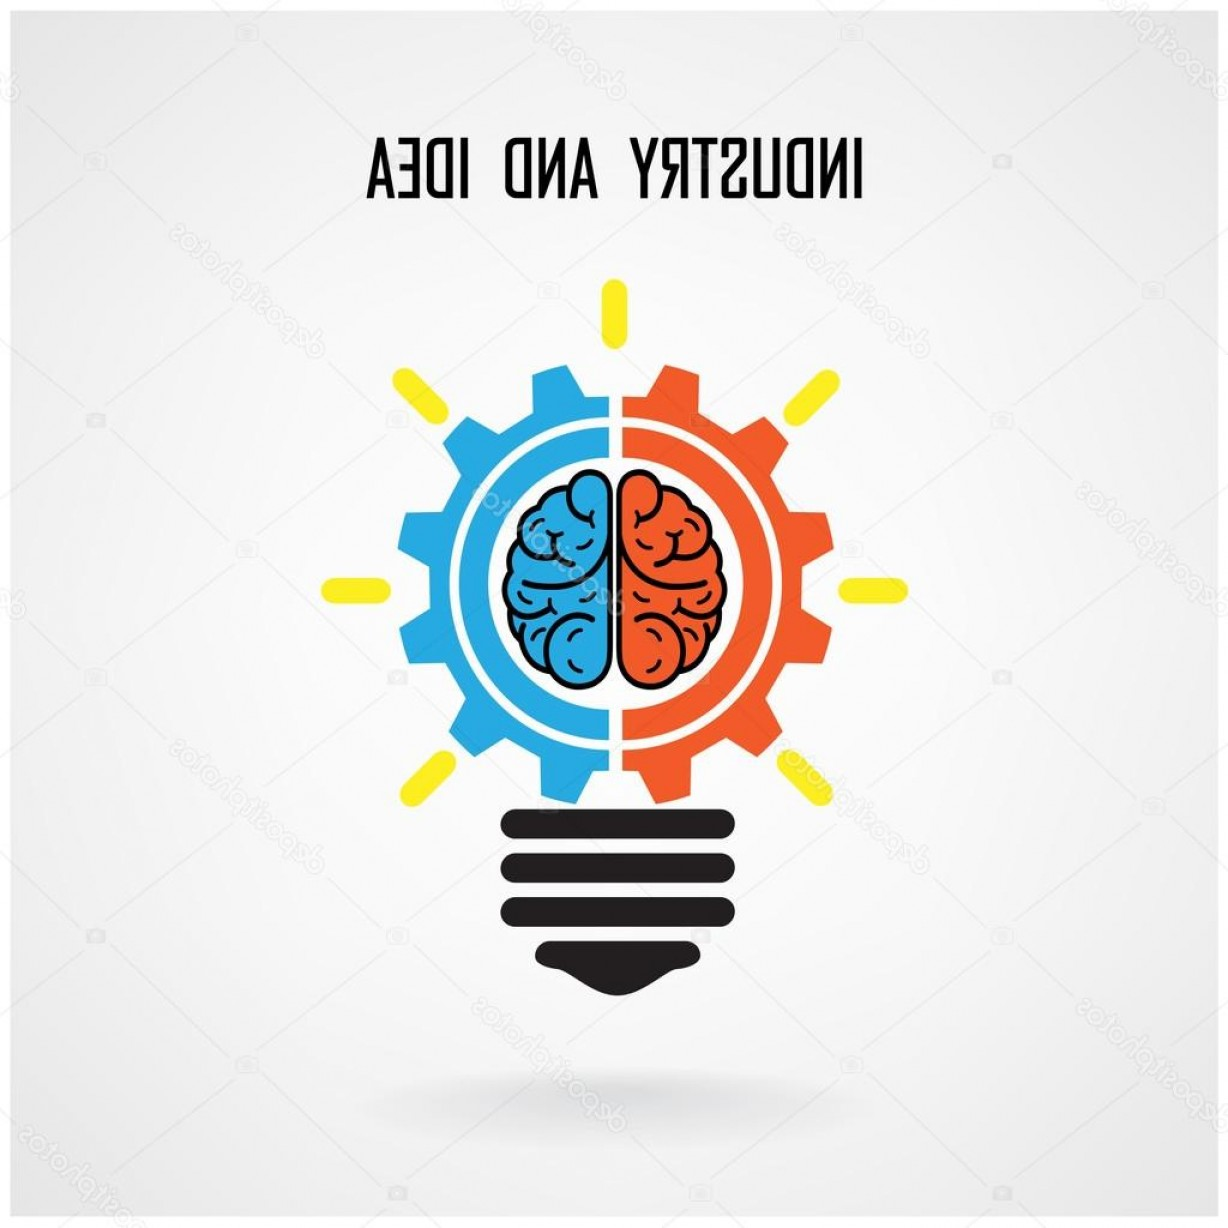 Creative Light Bulb Vector: Stock Illustration Creative Light Bulb Concept And